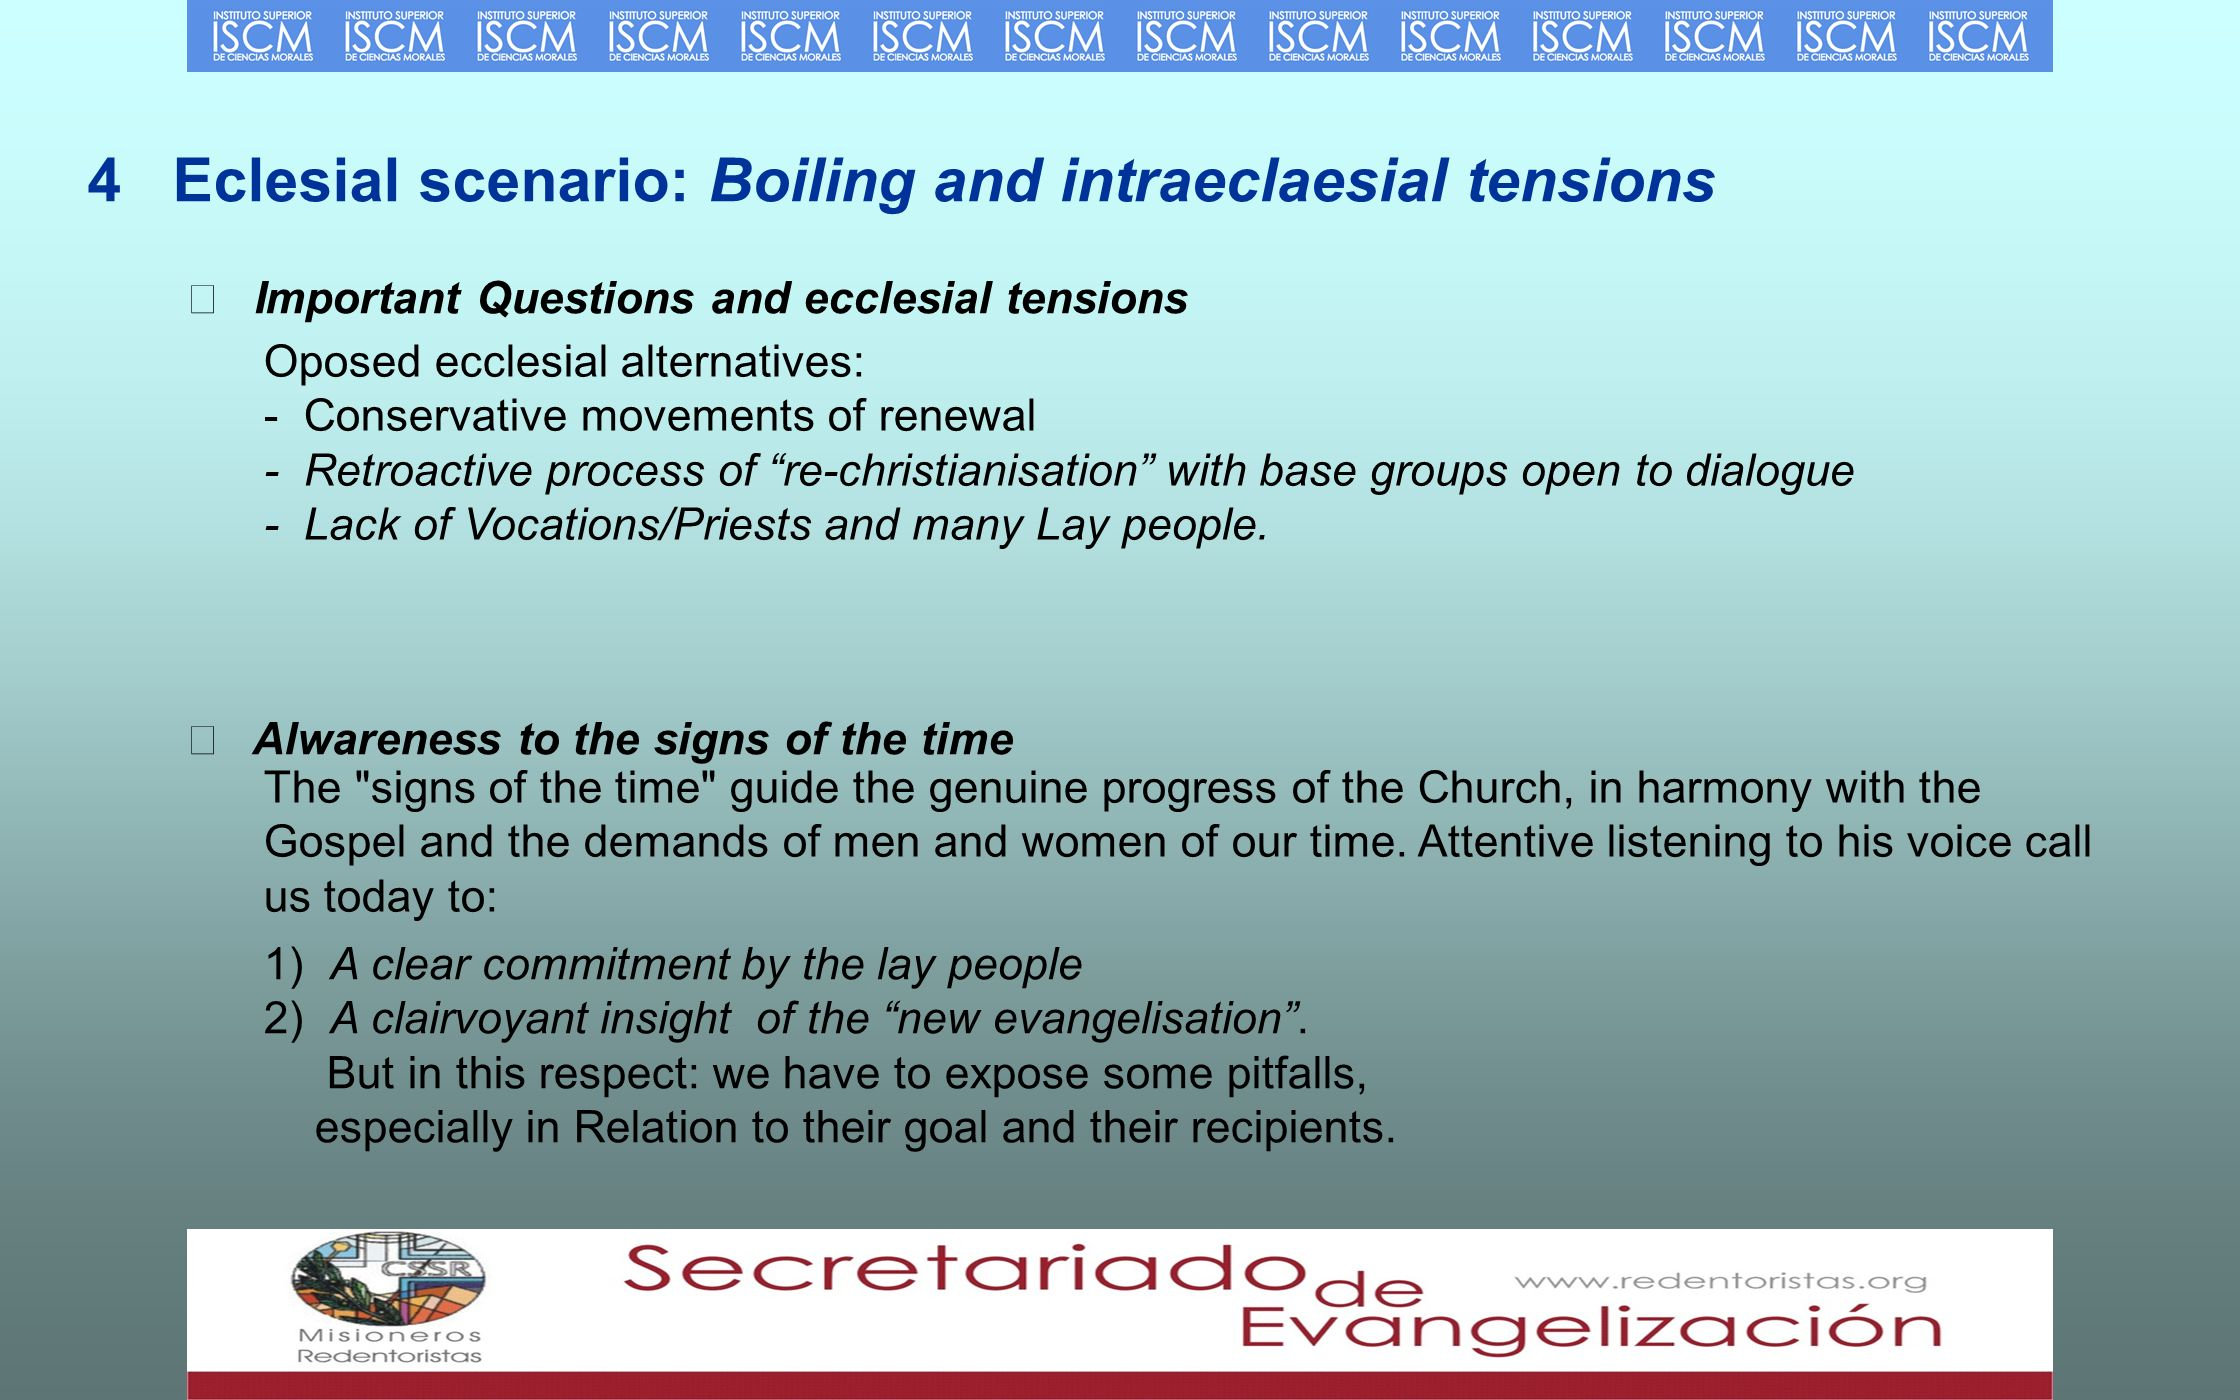 4 Eclesial scenario: Boiling and intraeclaesial tensions Important Questions and ecclesial tensions Oposed ecclesial alternatives: - Conservative movements of renewal - Retroactive process of re-christianisation with base groups open to dialogue - Lack of Vocations/Priests and many Lay people.